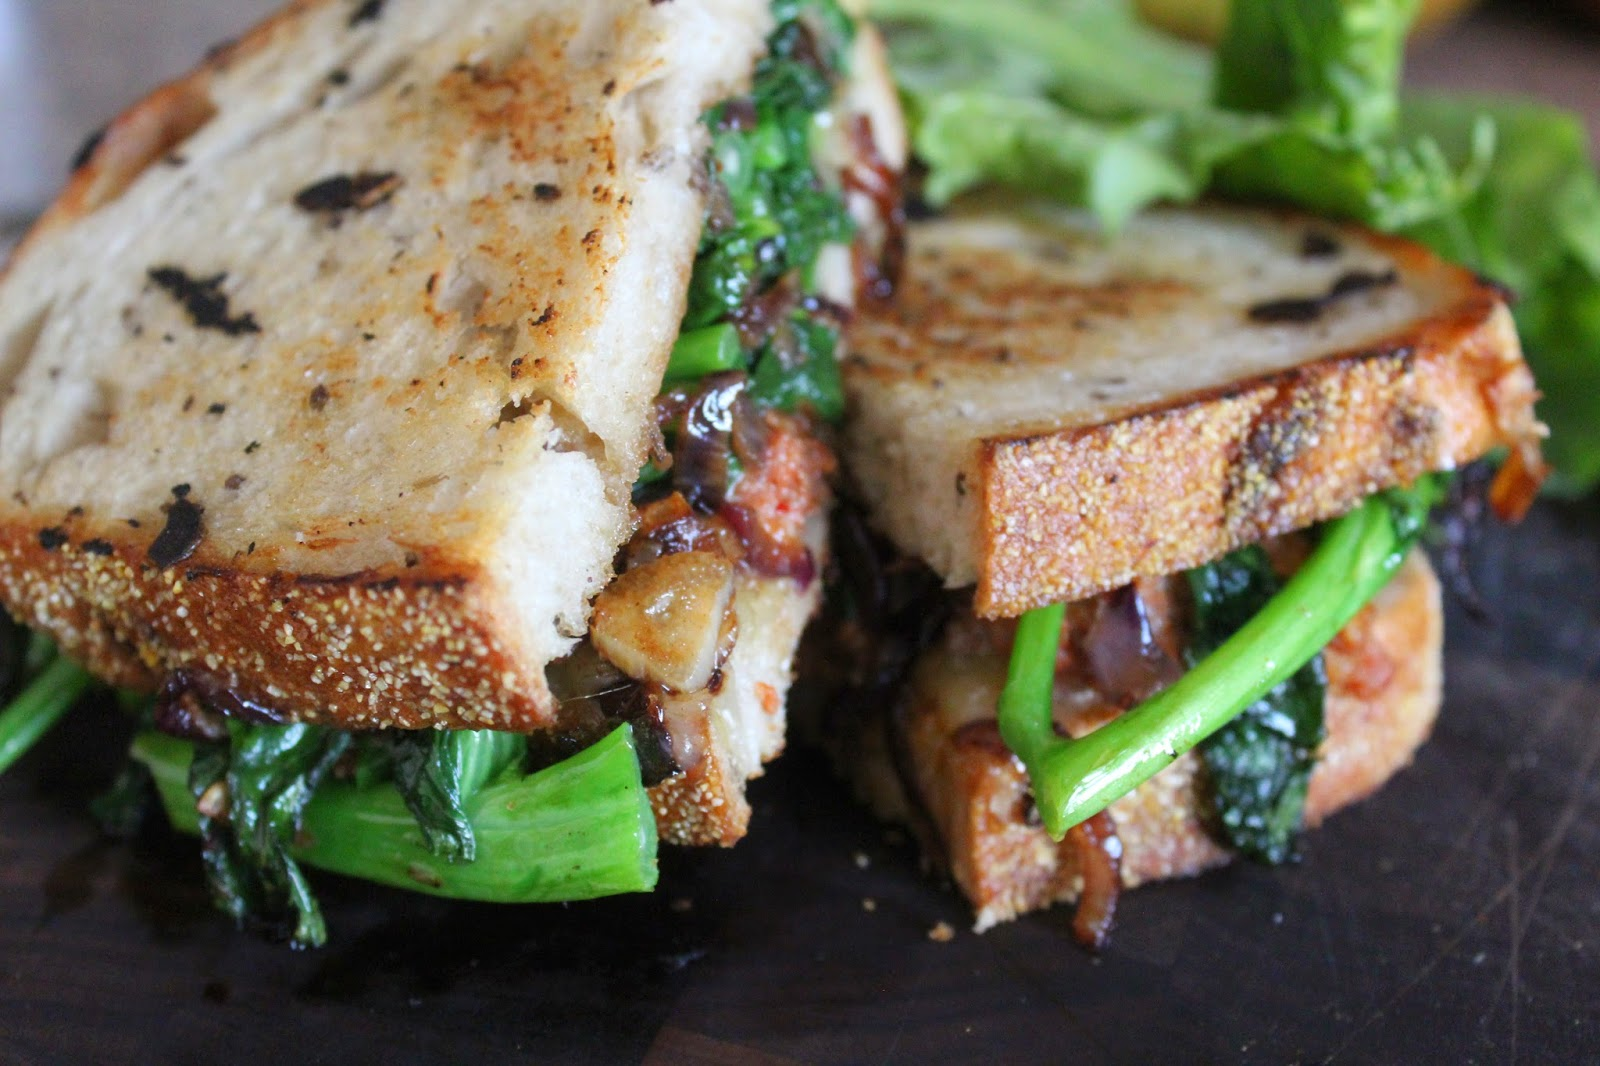 Broccoli Rabe Three Ways: Spicy Sausage and Broccoli Rabe Panini